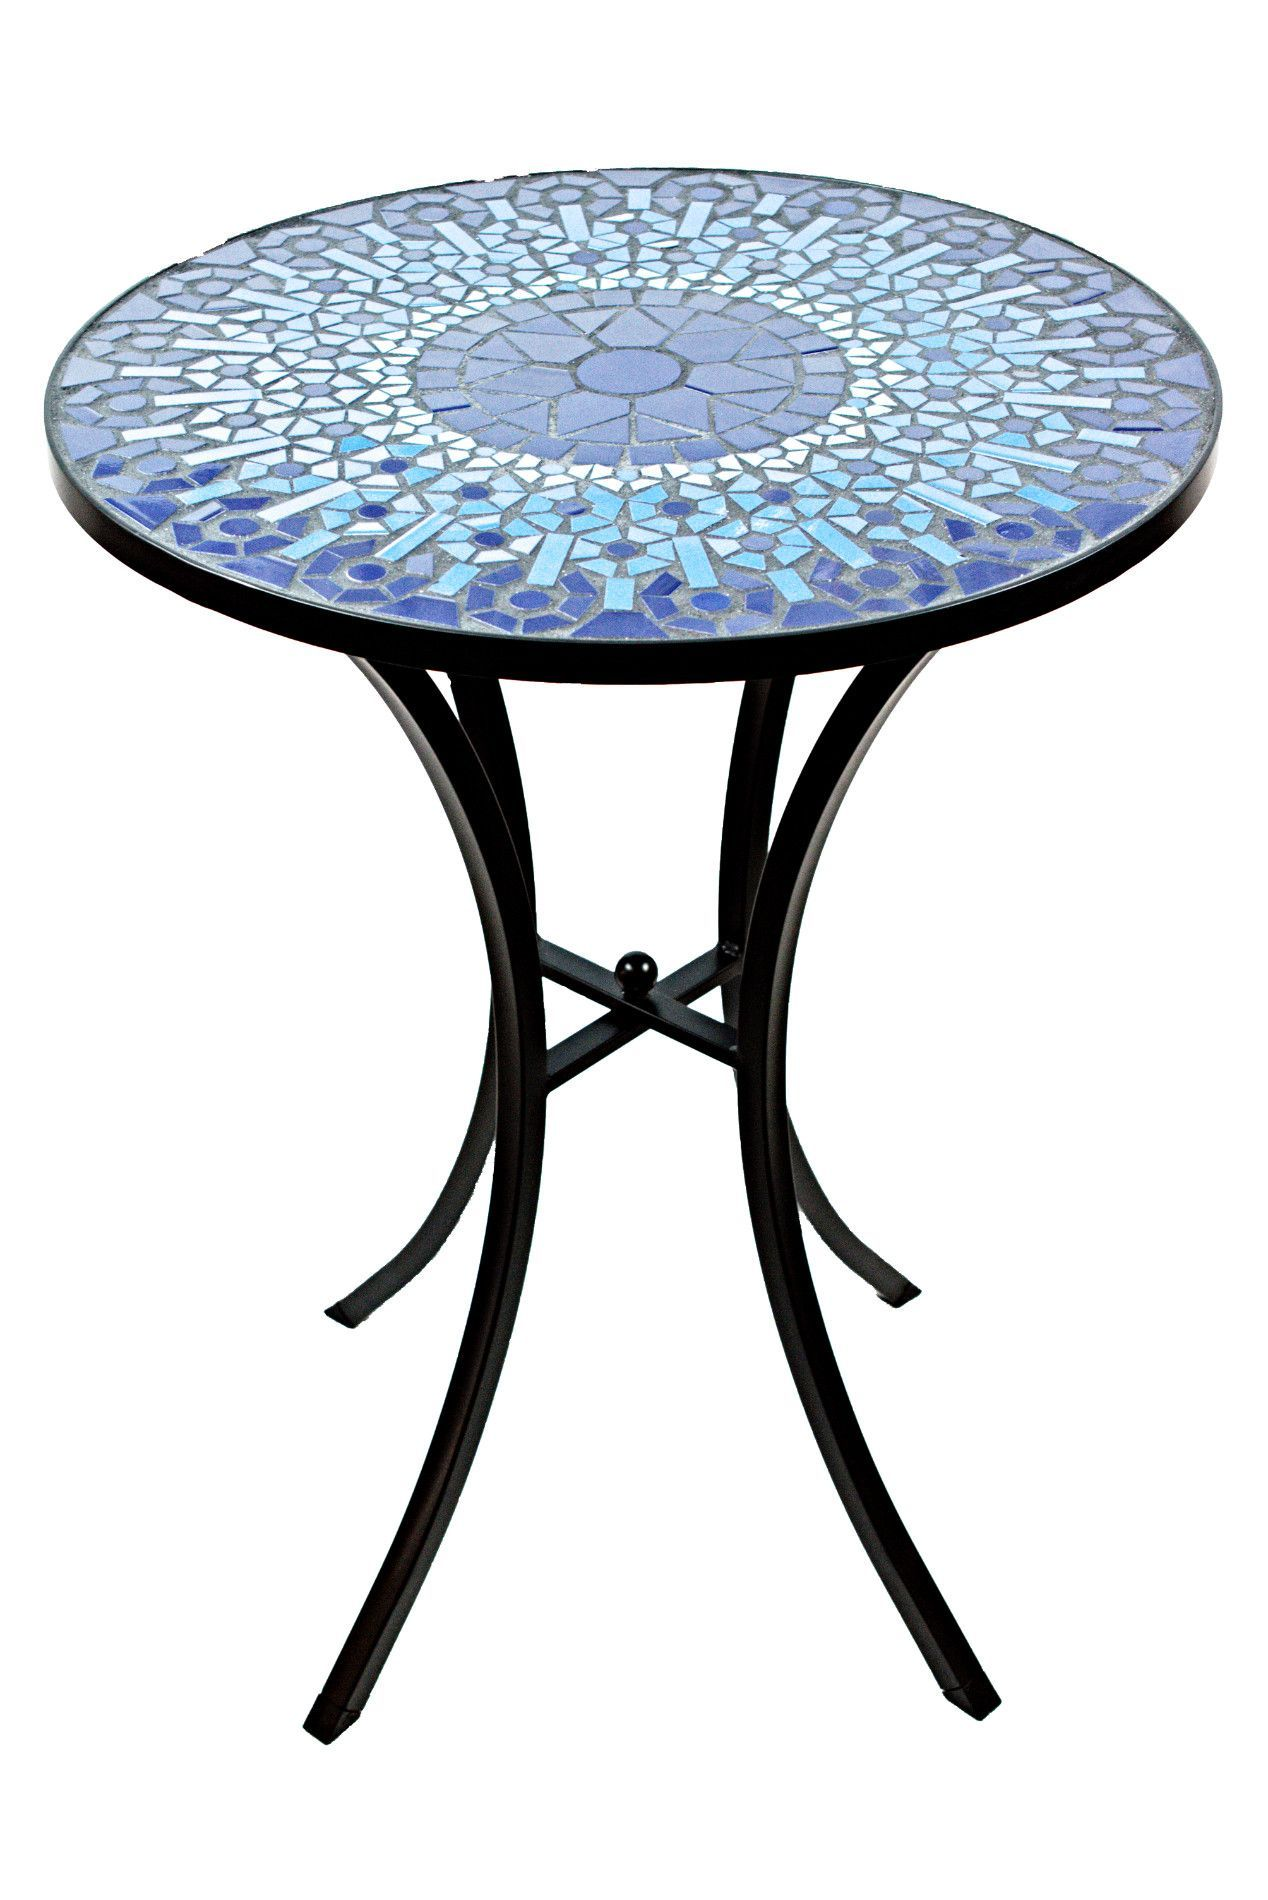 This Ceramic Tile Mosaic Accent Table Adds Elegance To Any Indoor Or  Outdoor Decor. The Intricate Tile Pattern Is Handcrafted For An Impeccable  Finish And ...